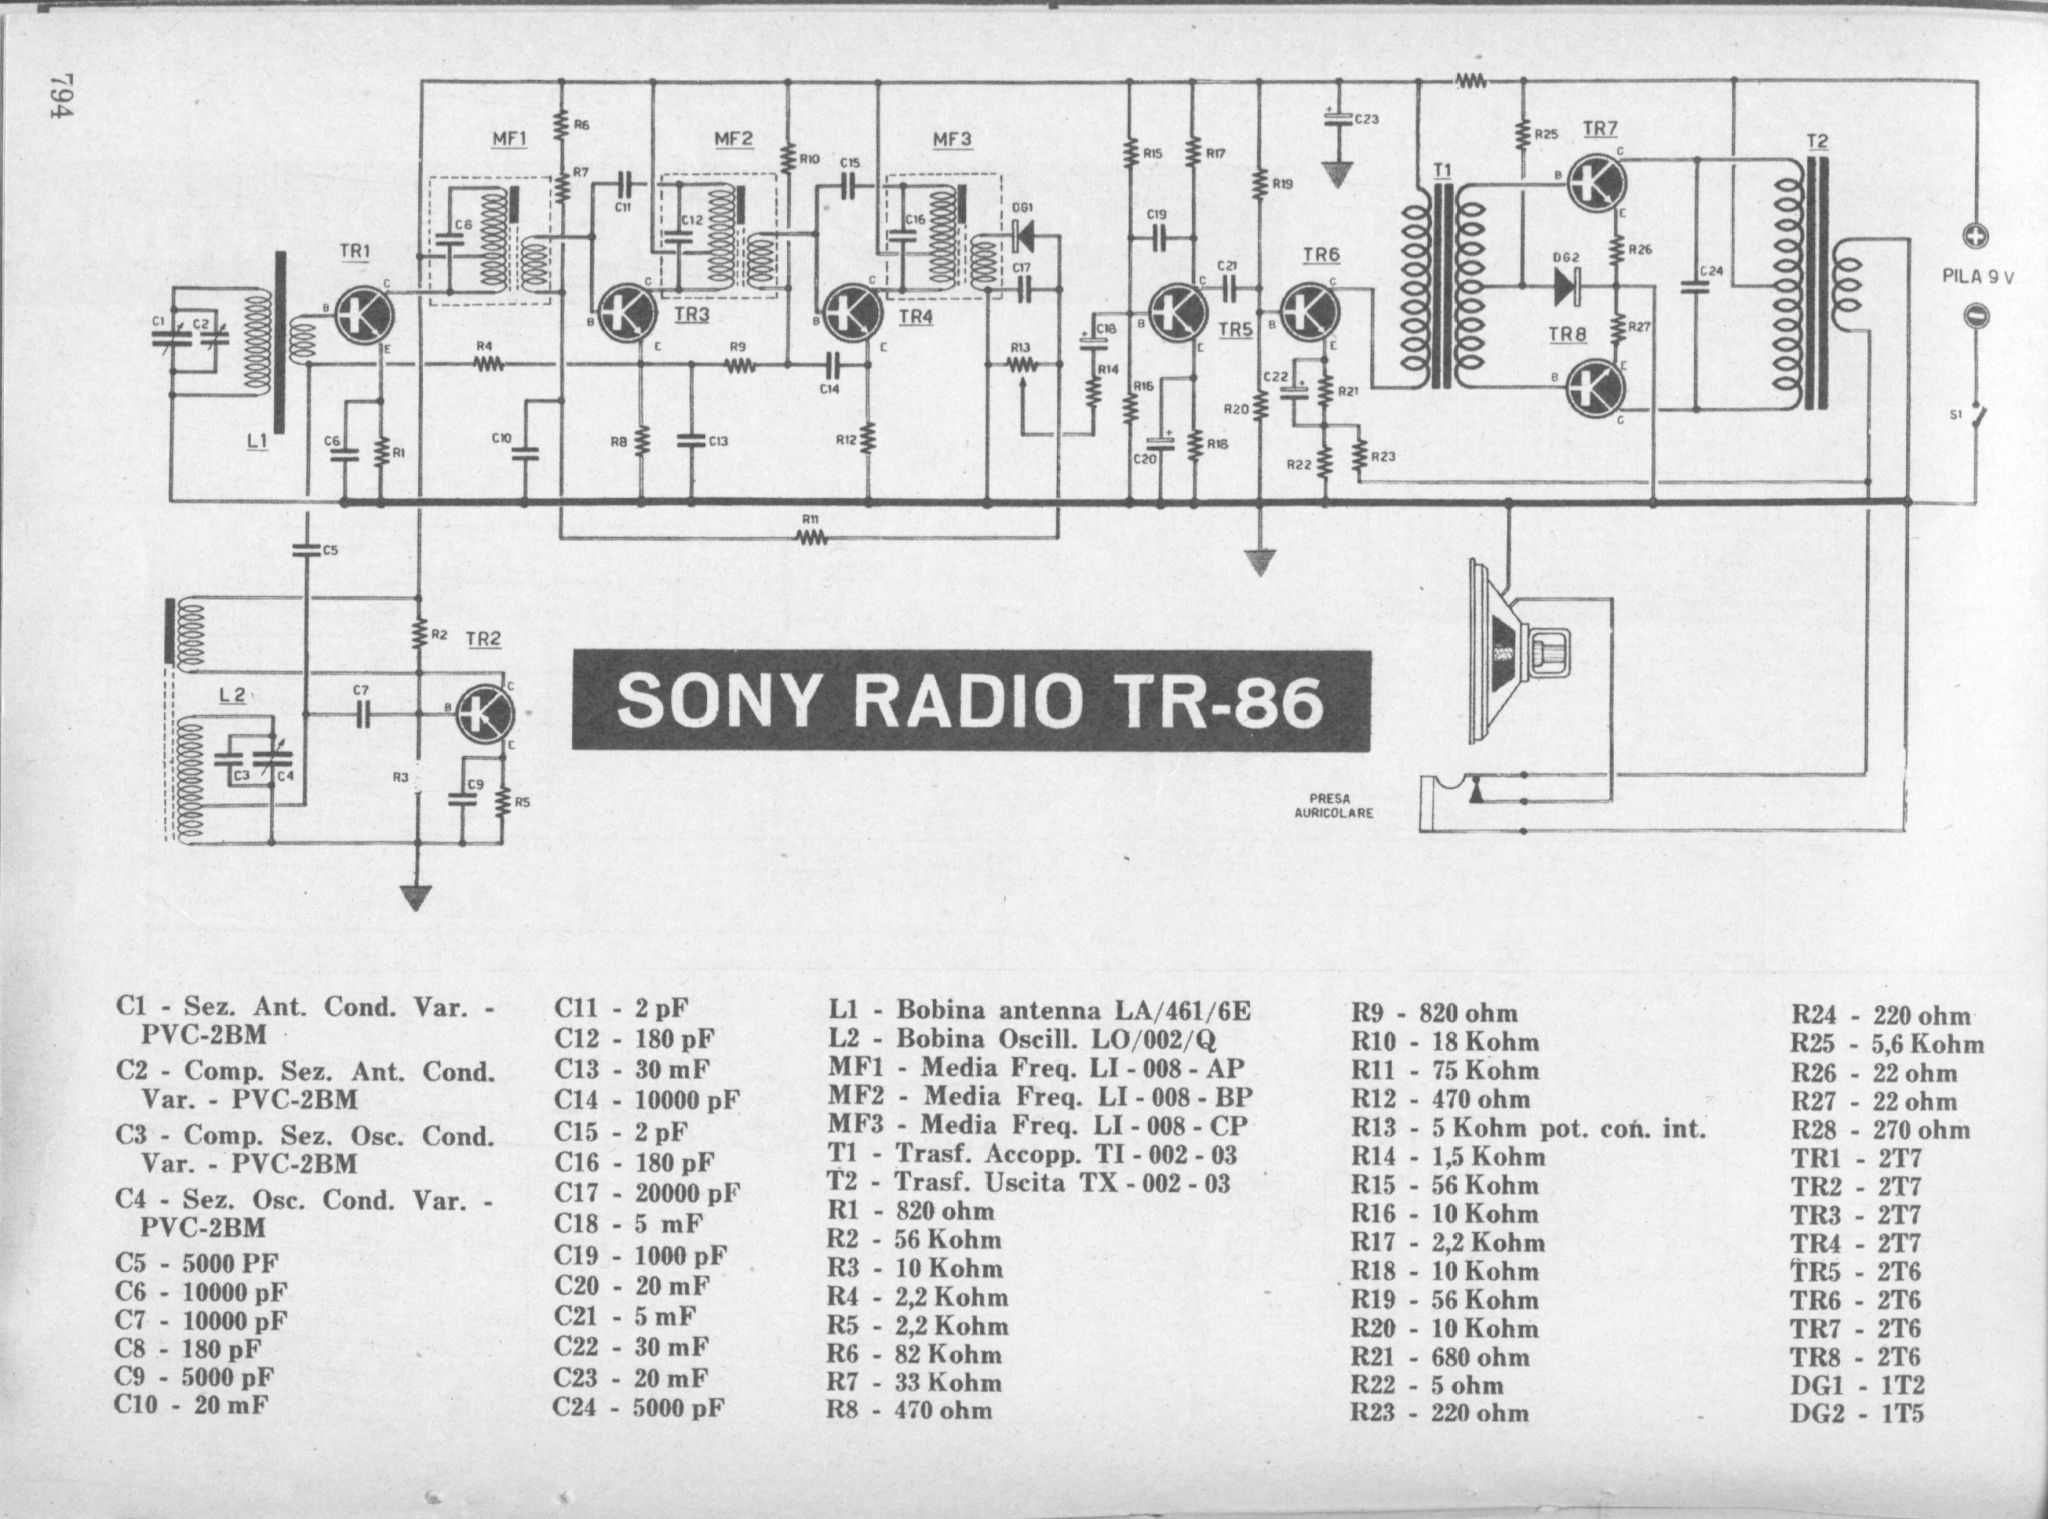 Sony Tr86 Push Pull Rx 470 Ohm Resistor Wiring Diagram Download Link The Radio Circuit